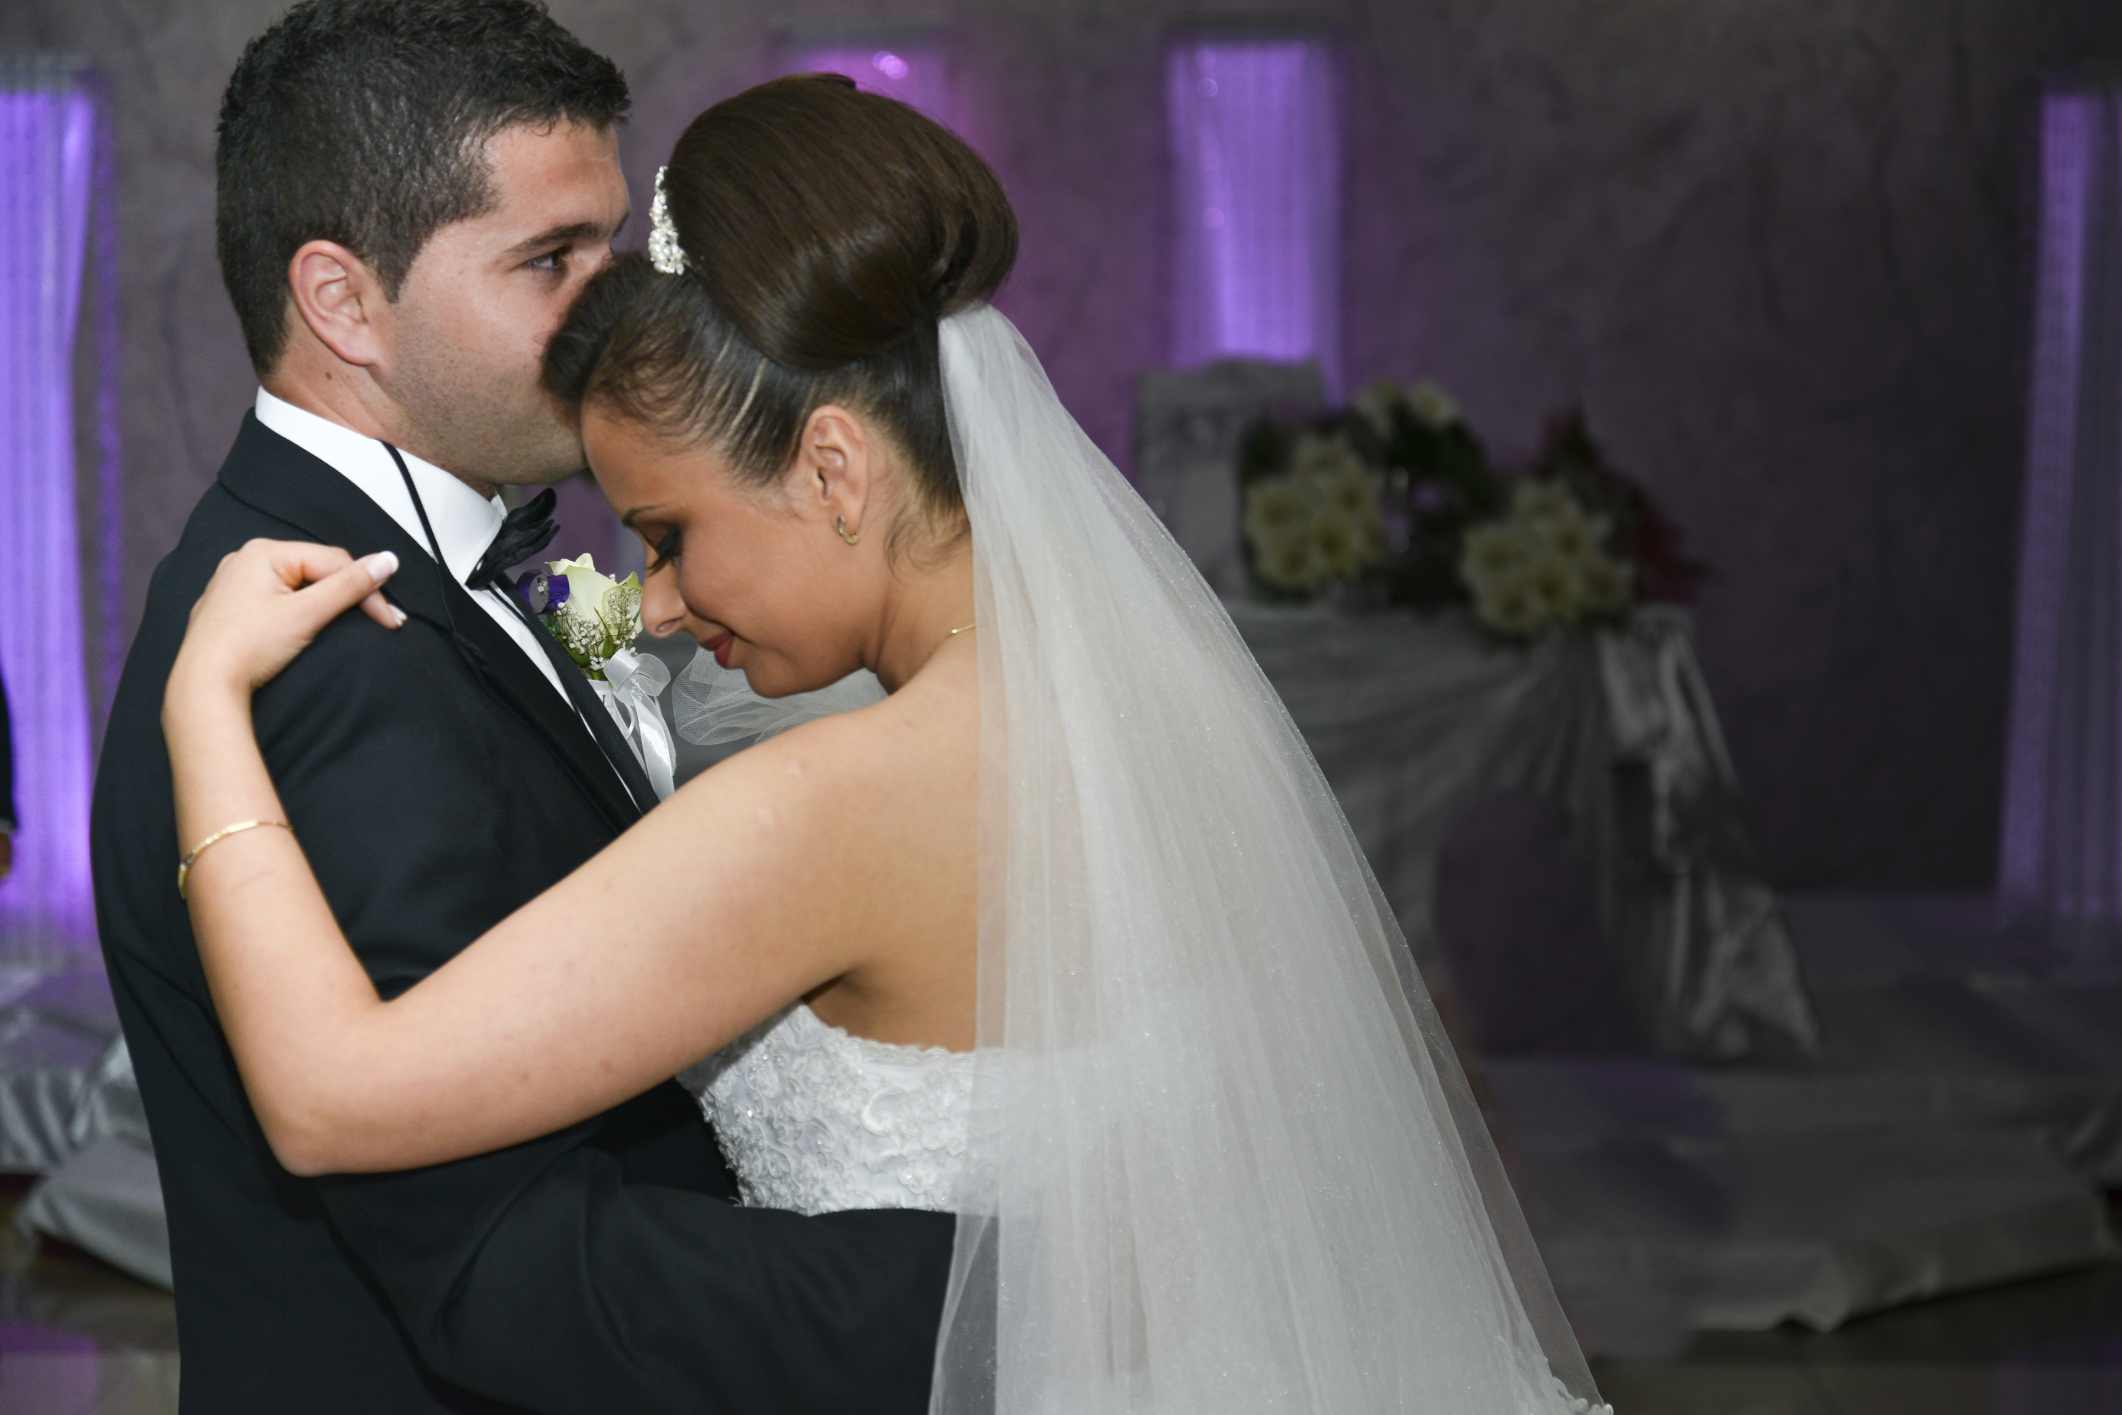 Choosing Your Perfect First Dance Song